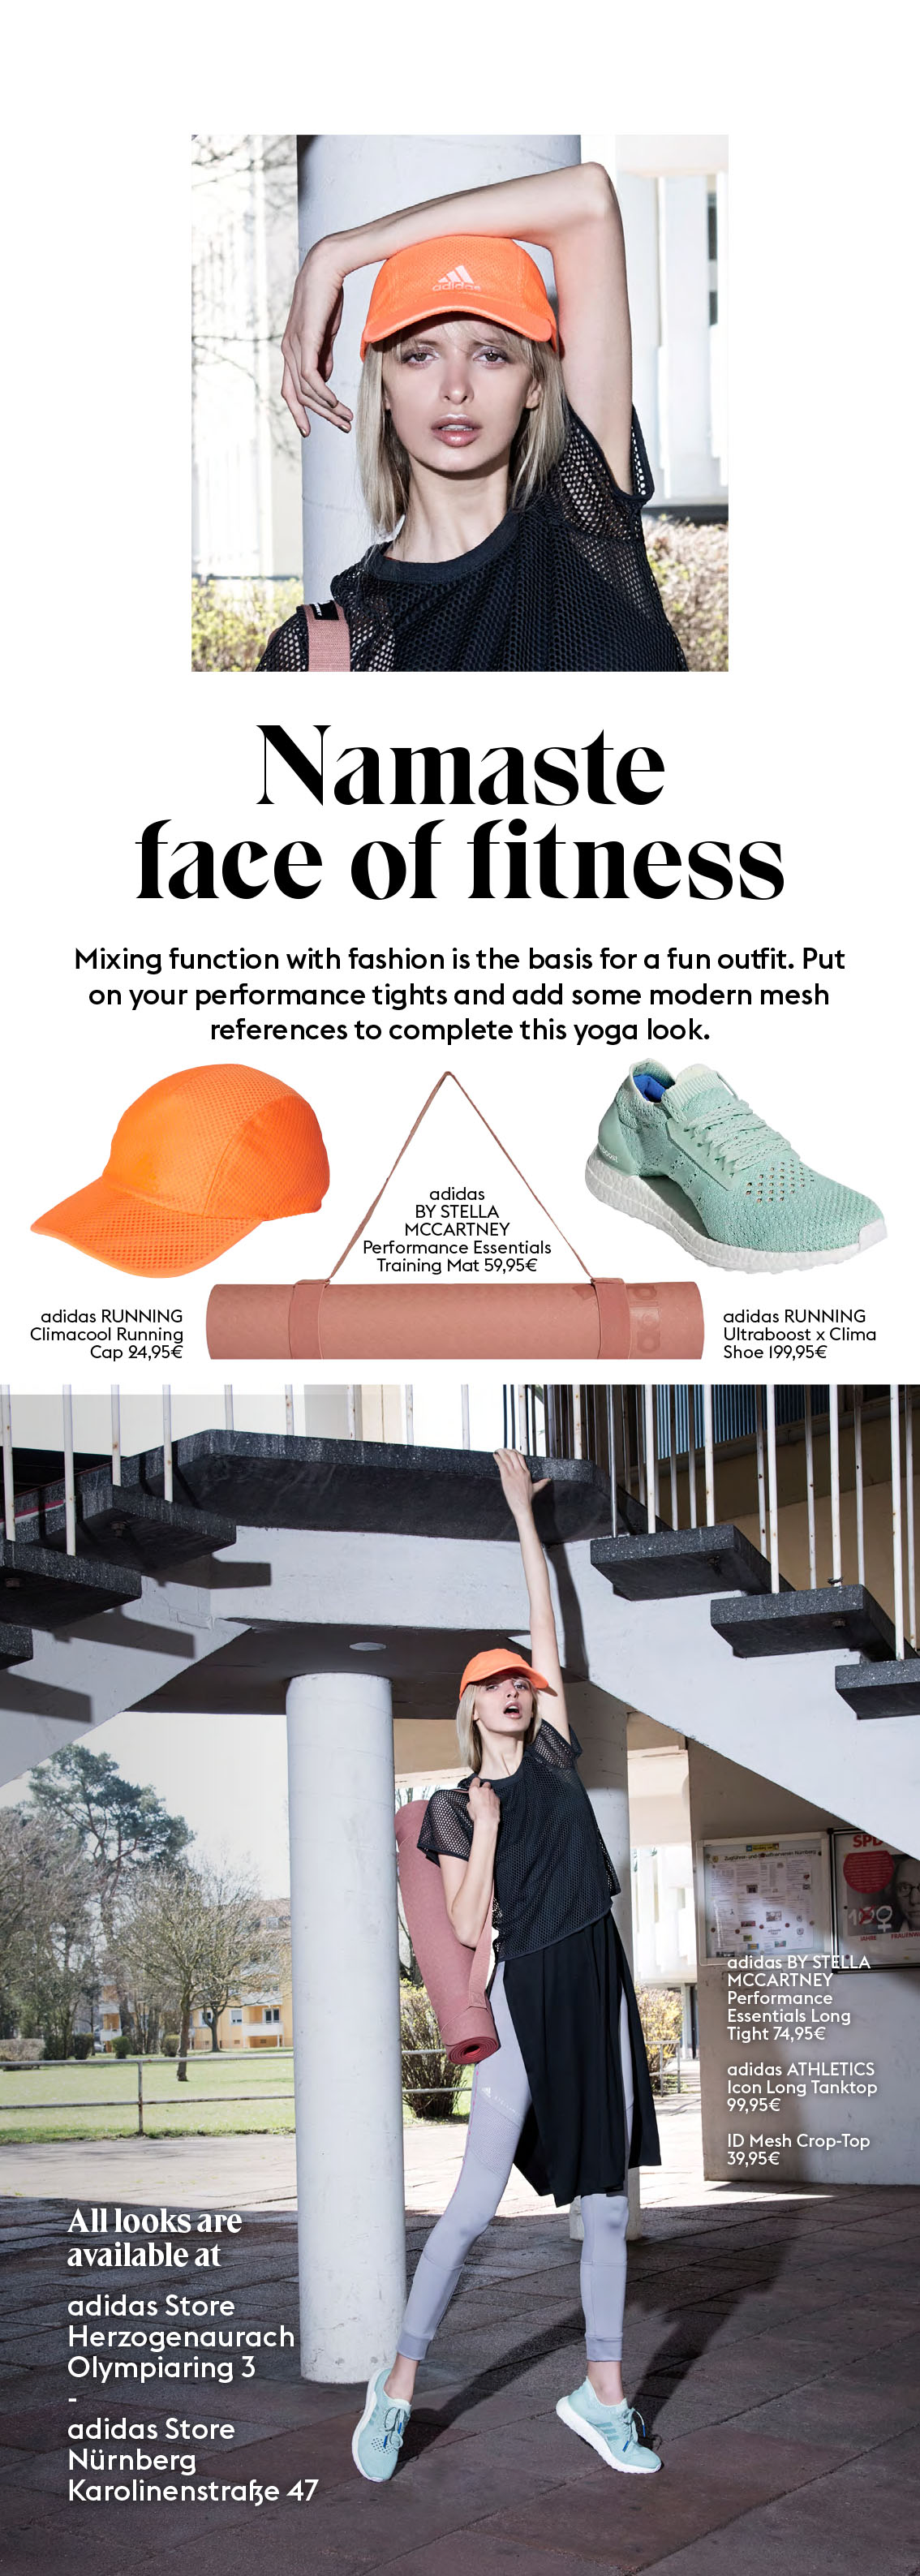 adidas cross over trends by N Style Guide